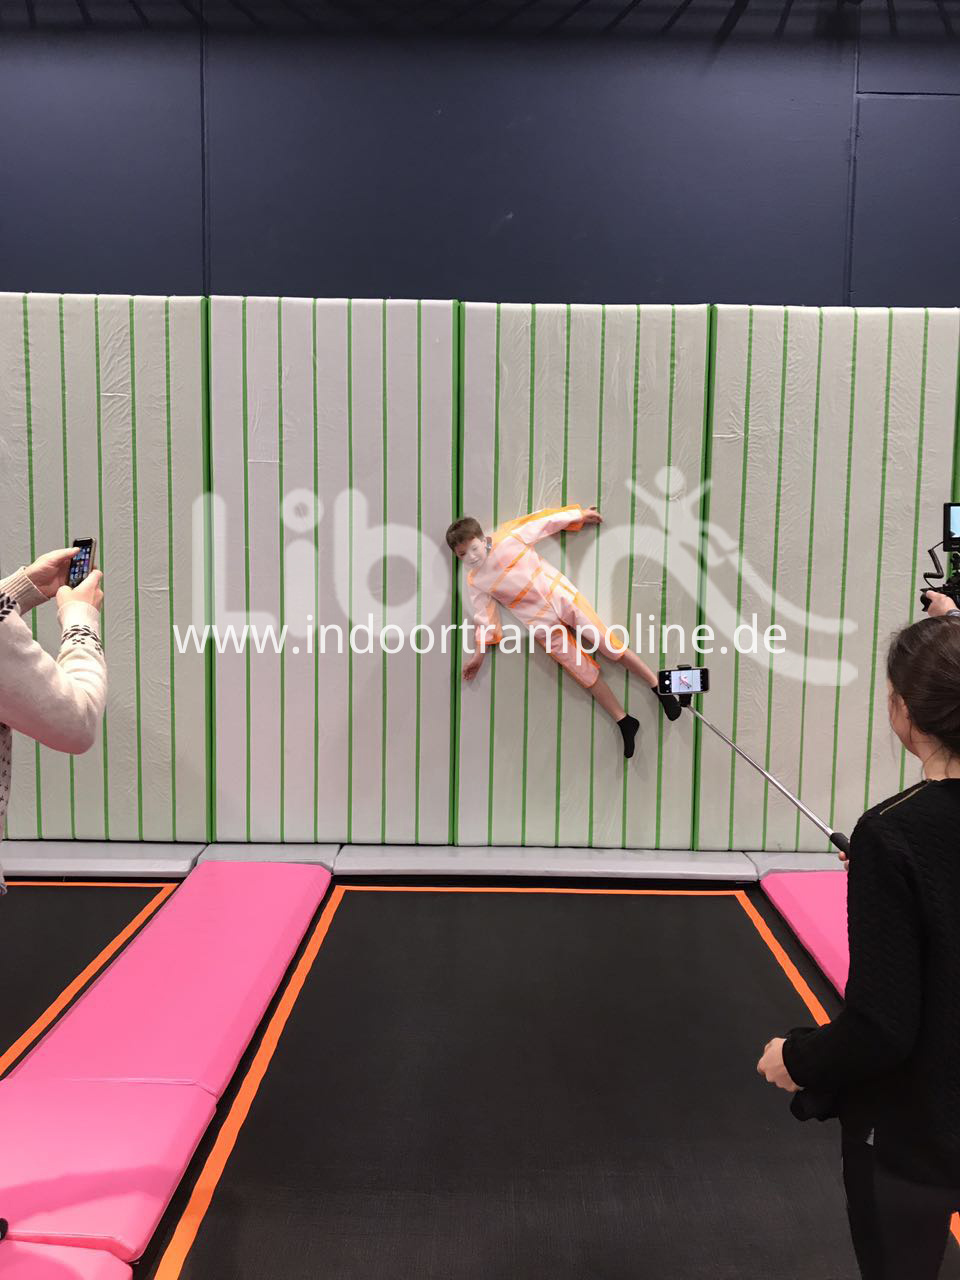 Jumping Fitness Trampoline